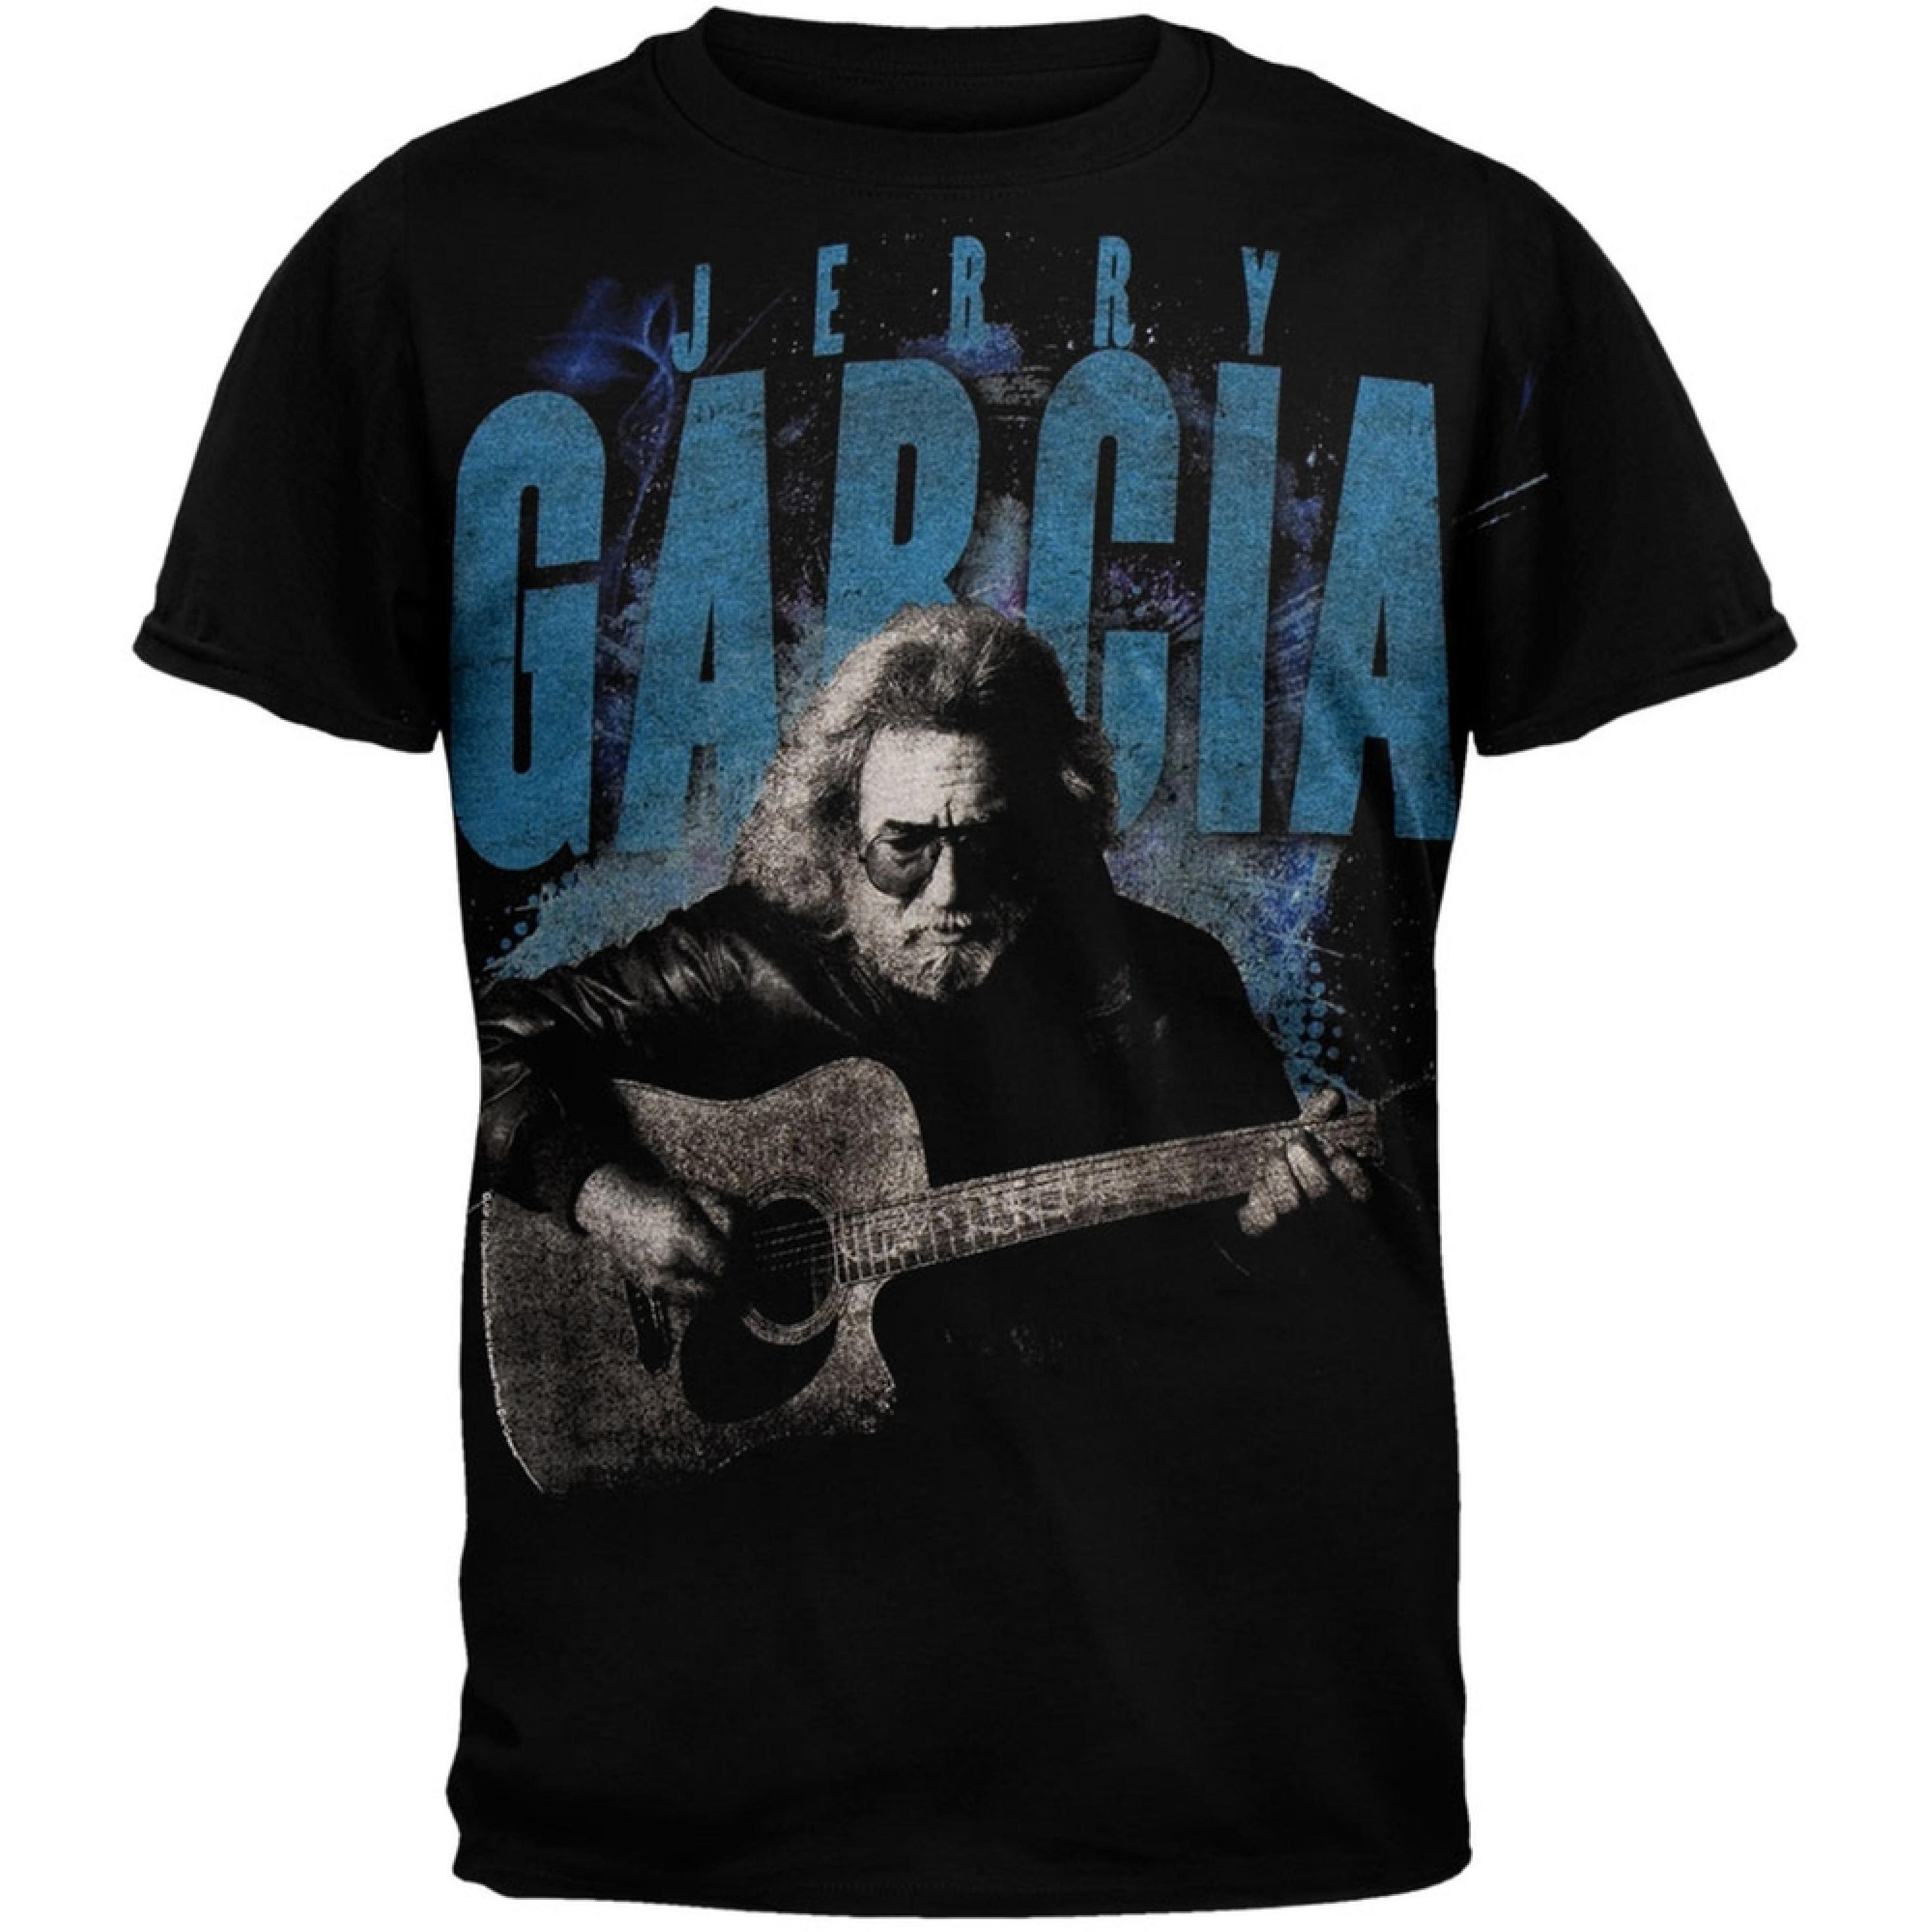 Jerry Garcia - Acoustic T-Shirt